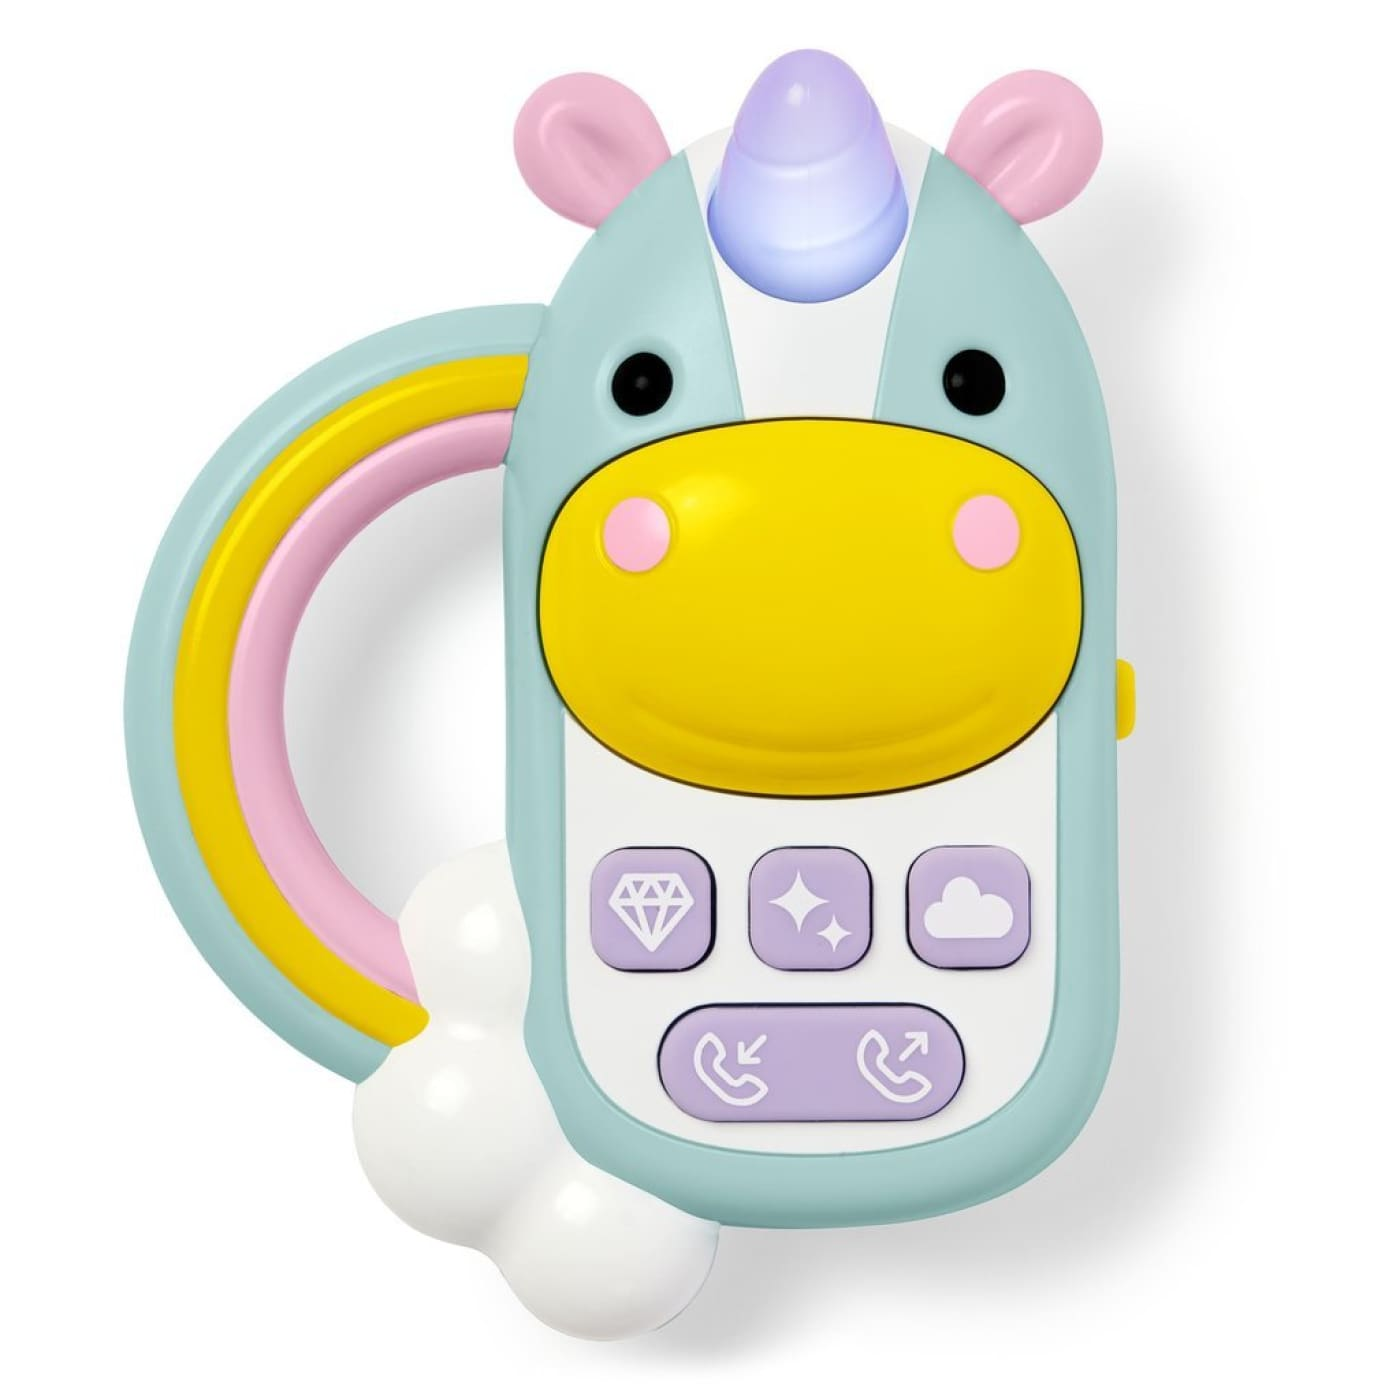 Skip Hop Unicorn Phone - Unicorn - NURSING & FEEDING - CONTAINERS/FEEDERS